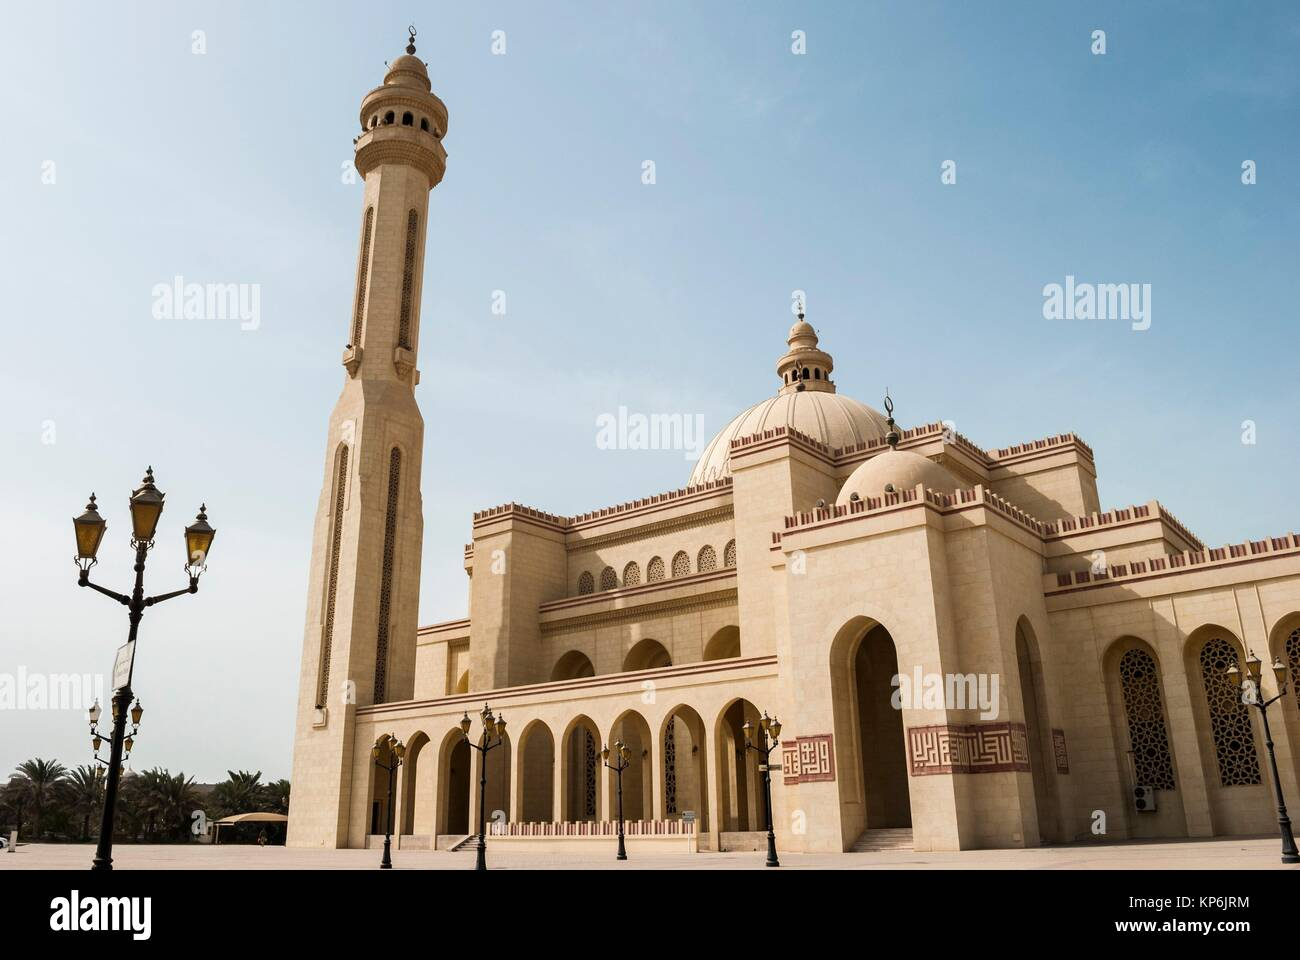 Al Fateh Grand Mosque, Manama, Bahrain, United Arab Emirates. - Stock Image